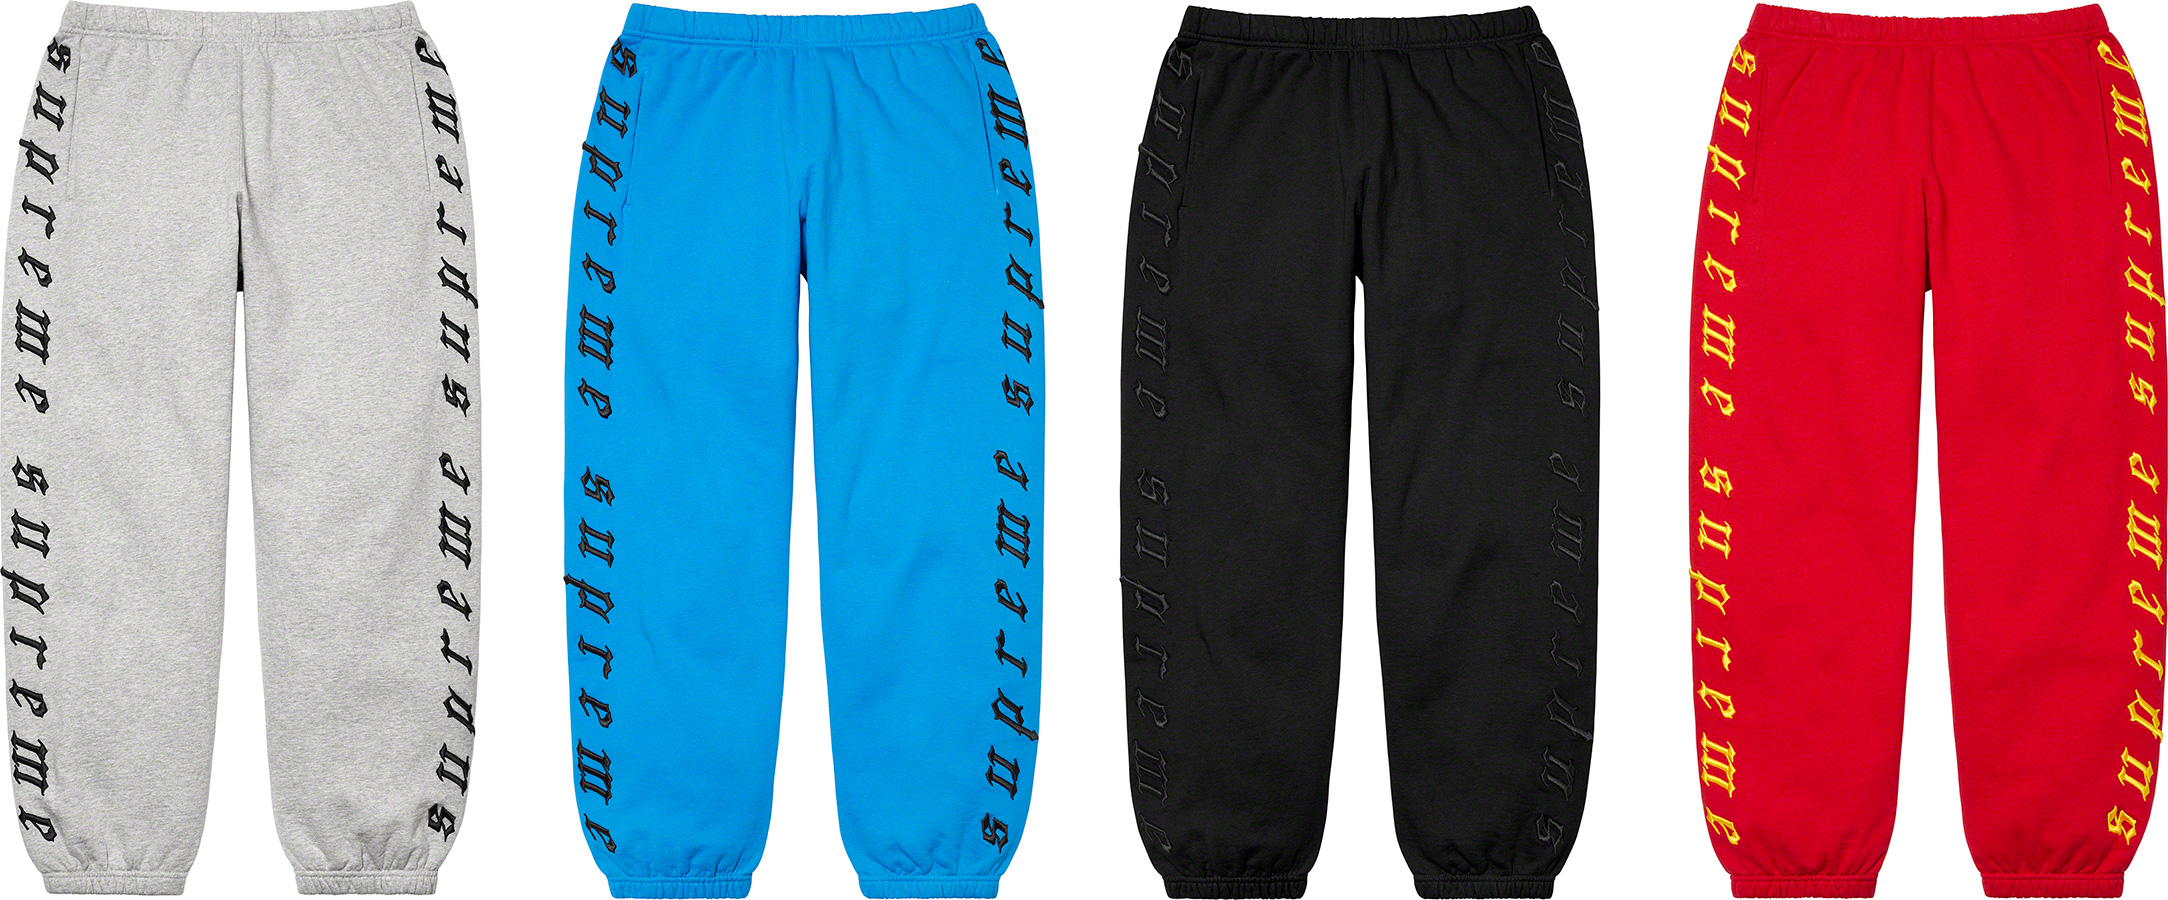 supreme-21aw-21fw-raised-embroidery-sweatpant